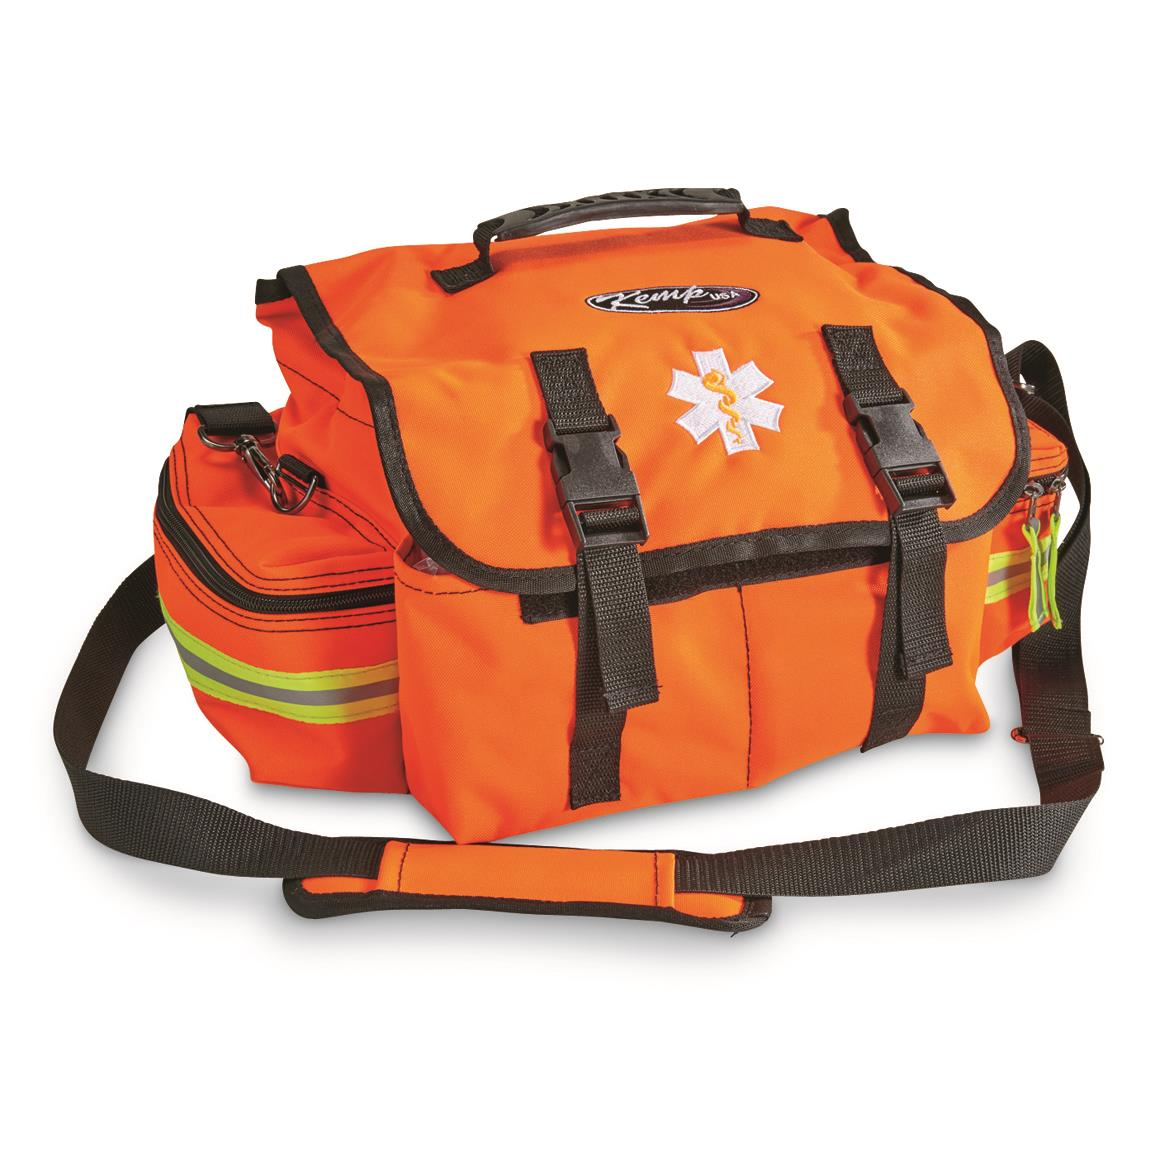 Features carrying handle or shoulder strap for versatile carry.